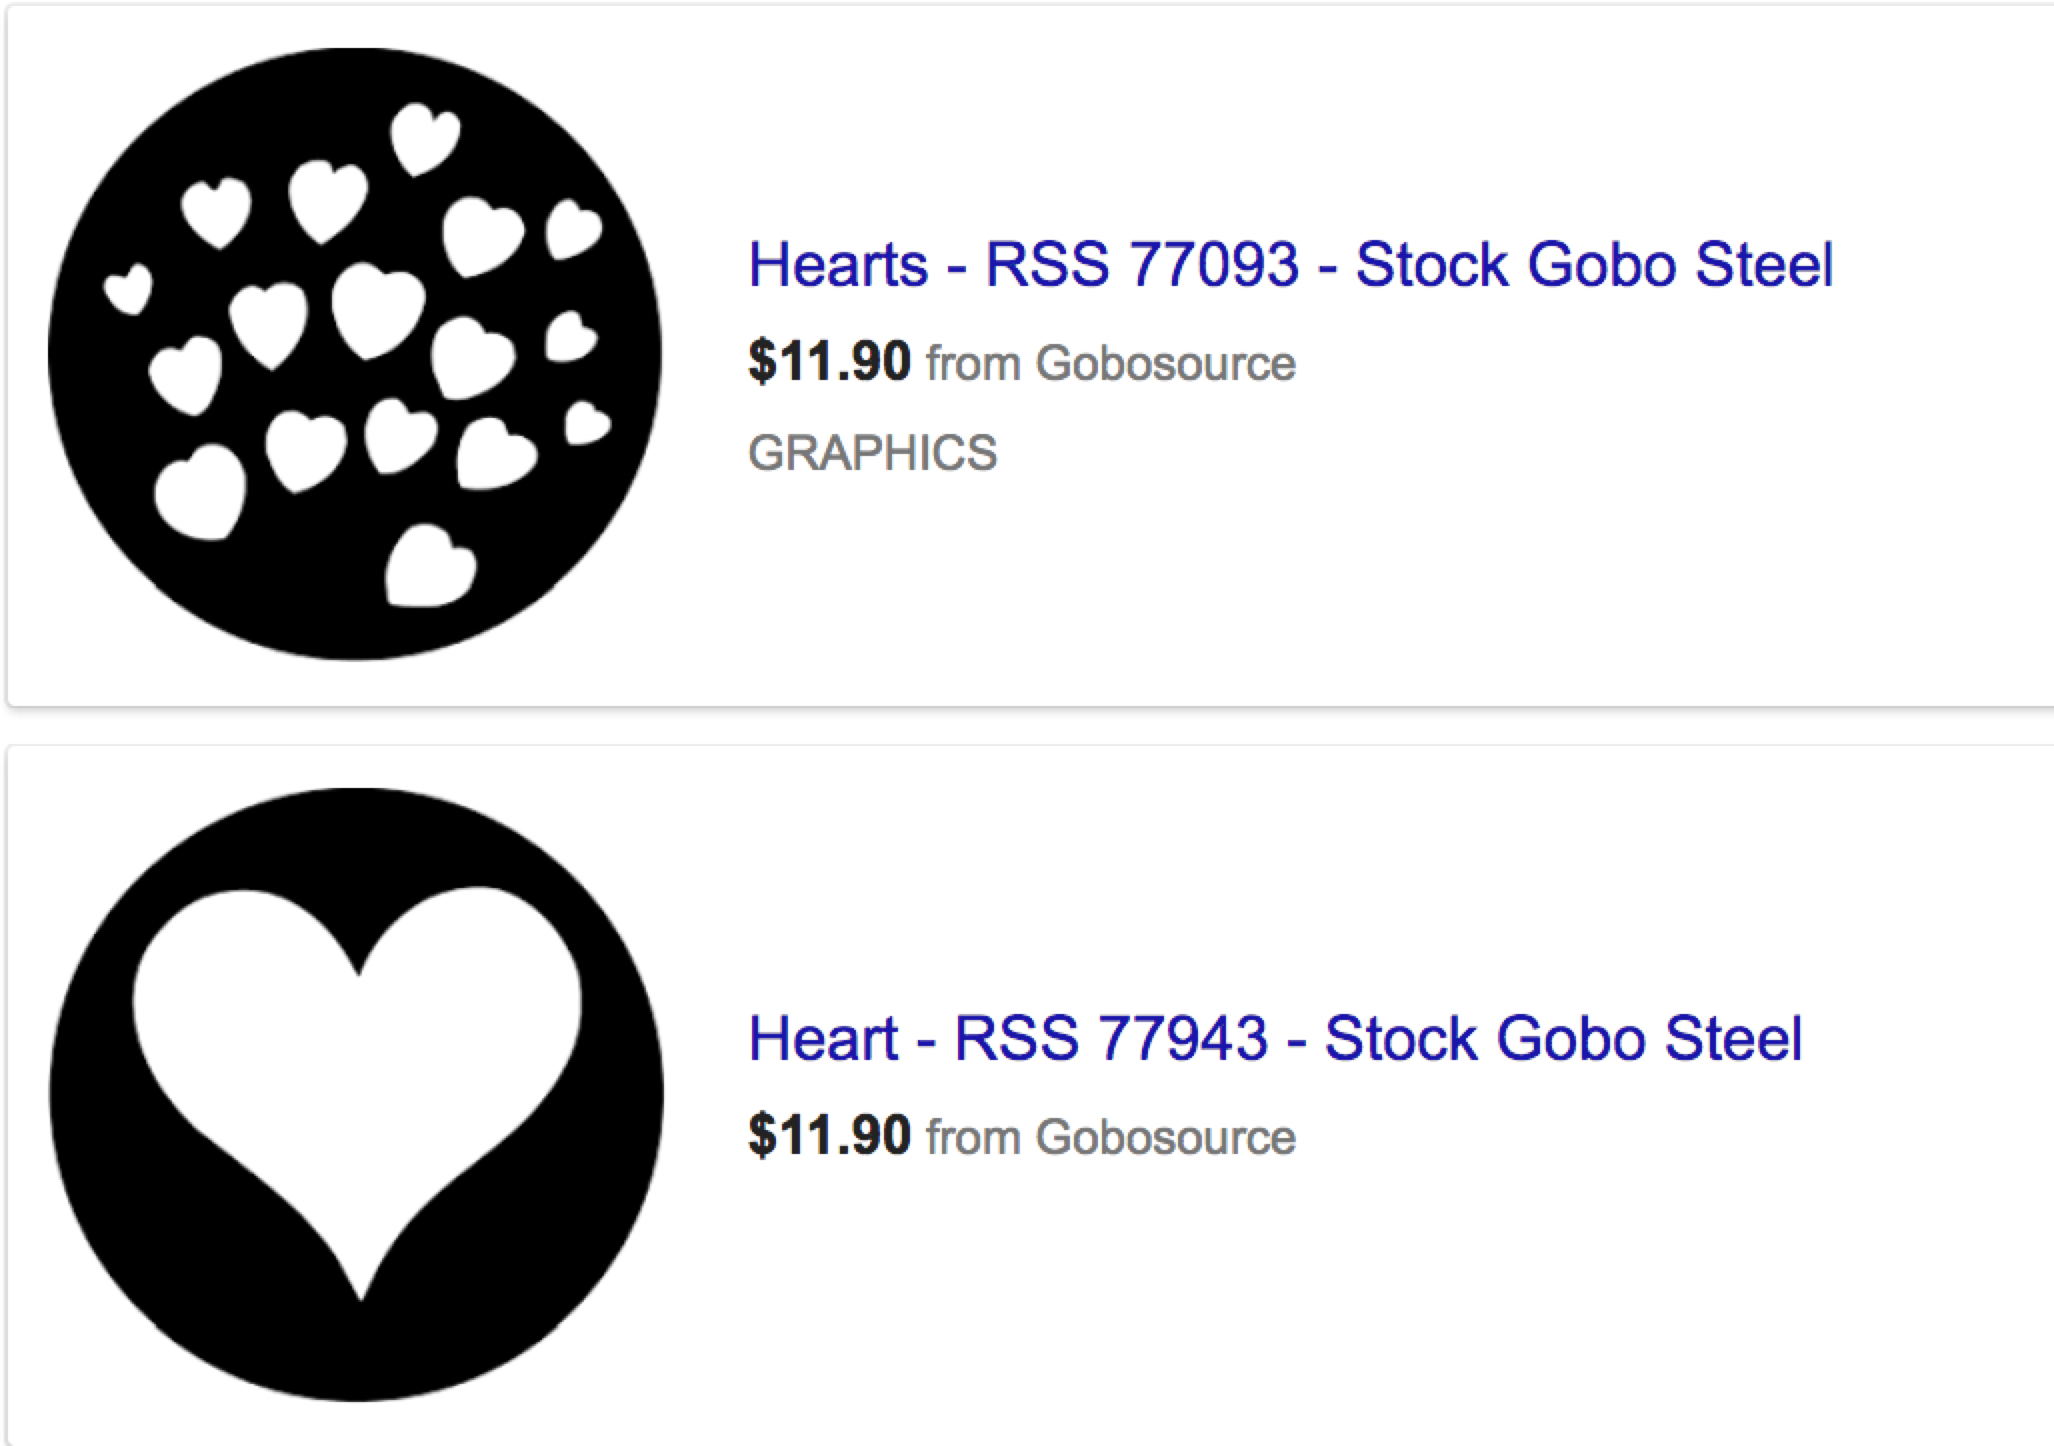 Hey! Steel Gobos are cheap, don't you suppose?